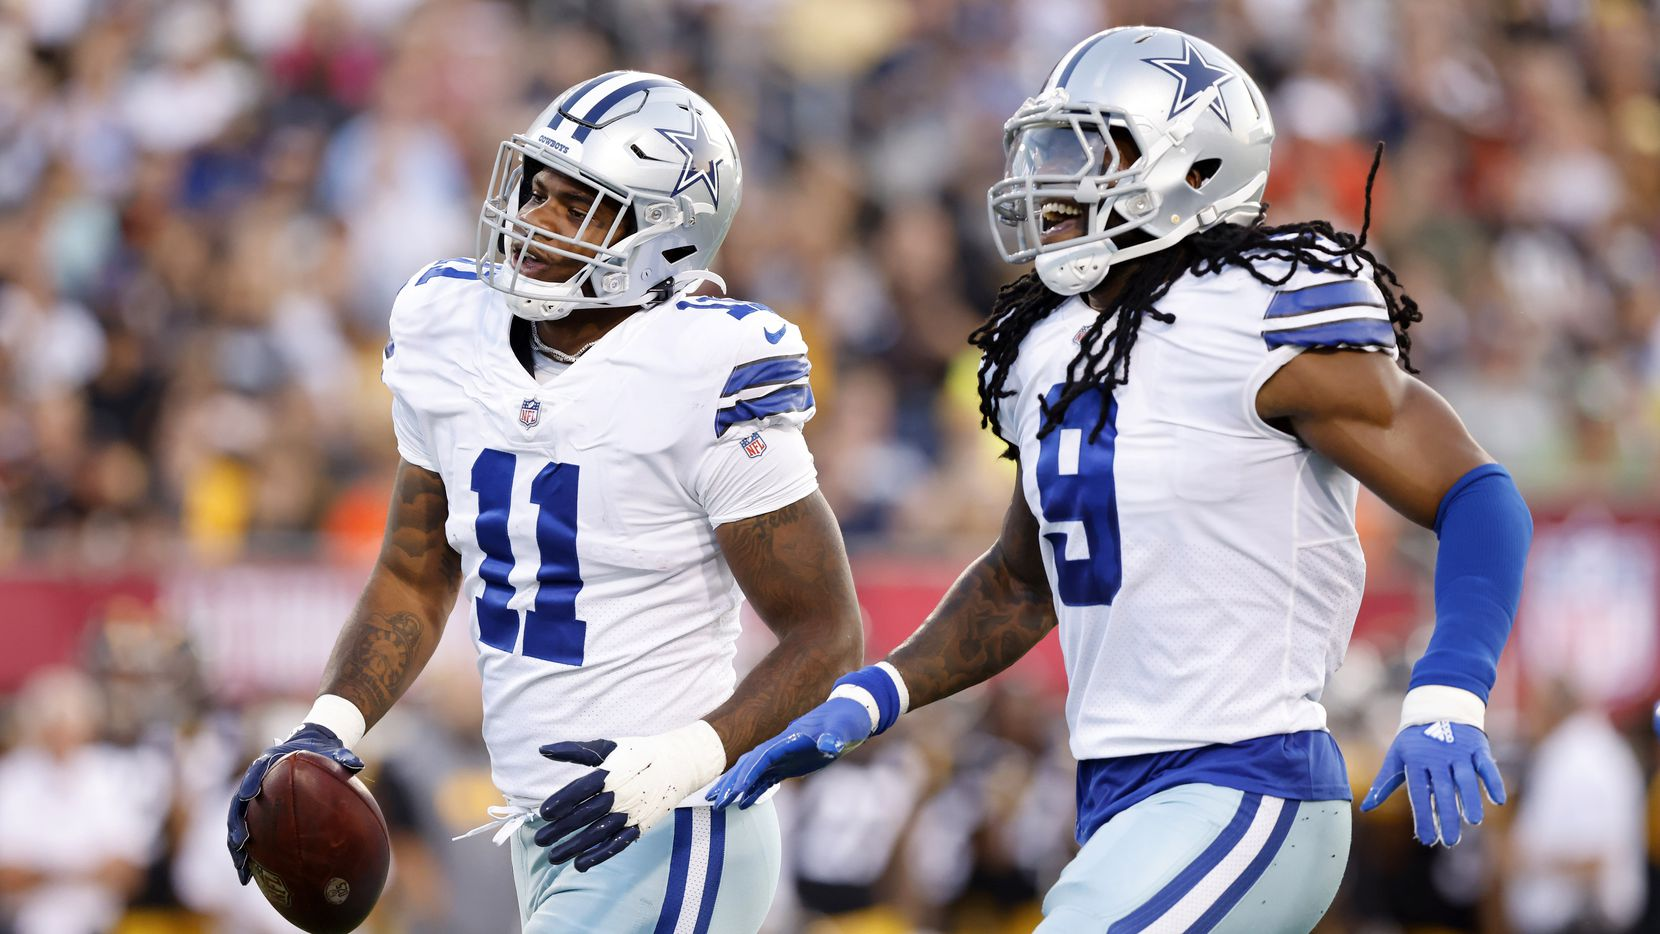 Dallas Cowboys linebacker Micah Parsons (11) celebrates his fumble recovery of Pittsburgh Steelers quarterback Mason Rudolph with teammate Jaylon Smith (9) during the first quarter of their preseason game at Tom Benson Hall of Fame Stadium in Canton, Ohio, Thursday, August 5, 2021.